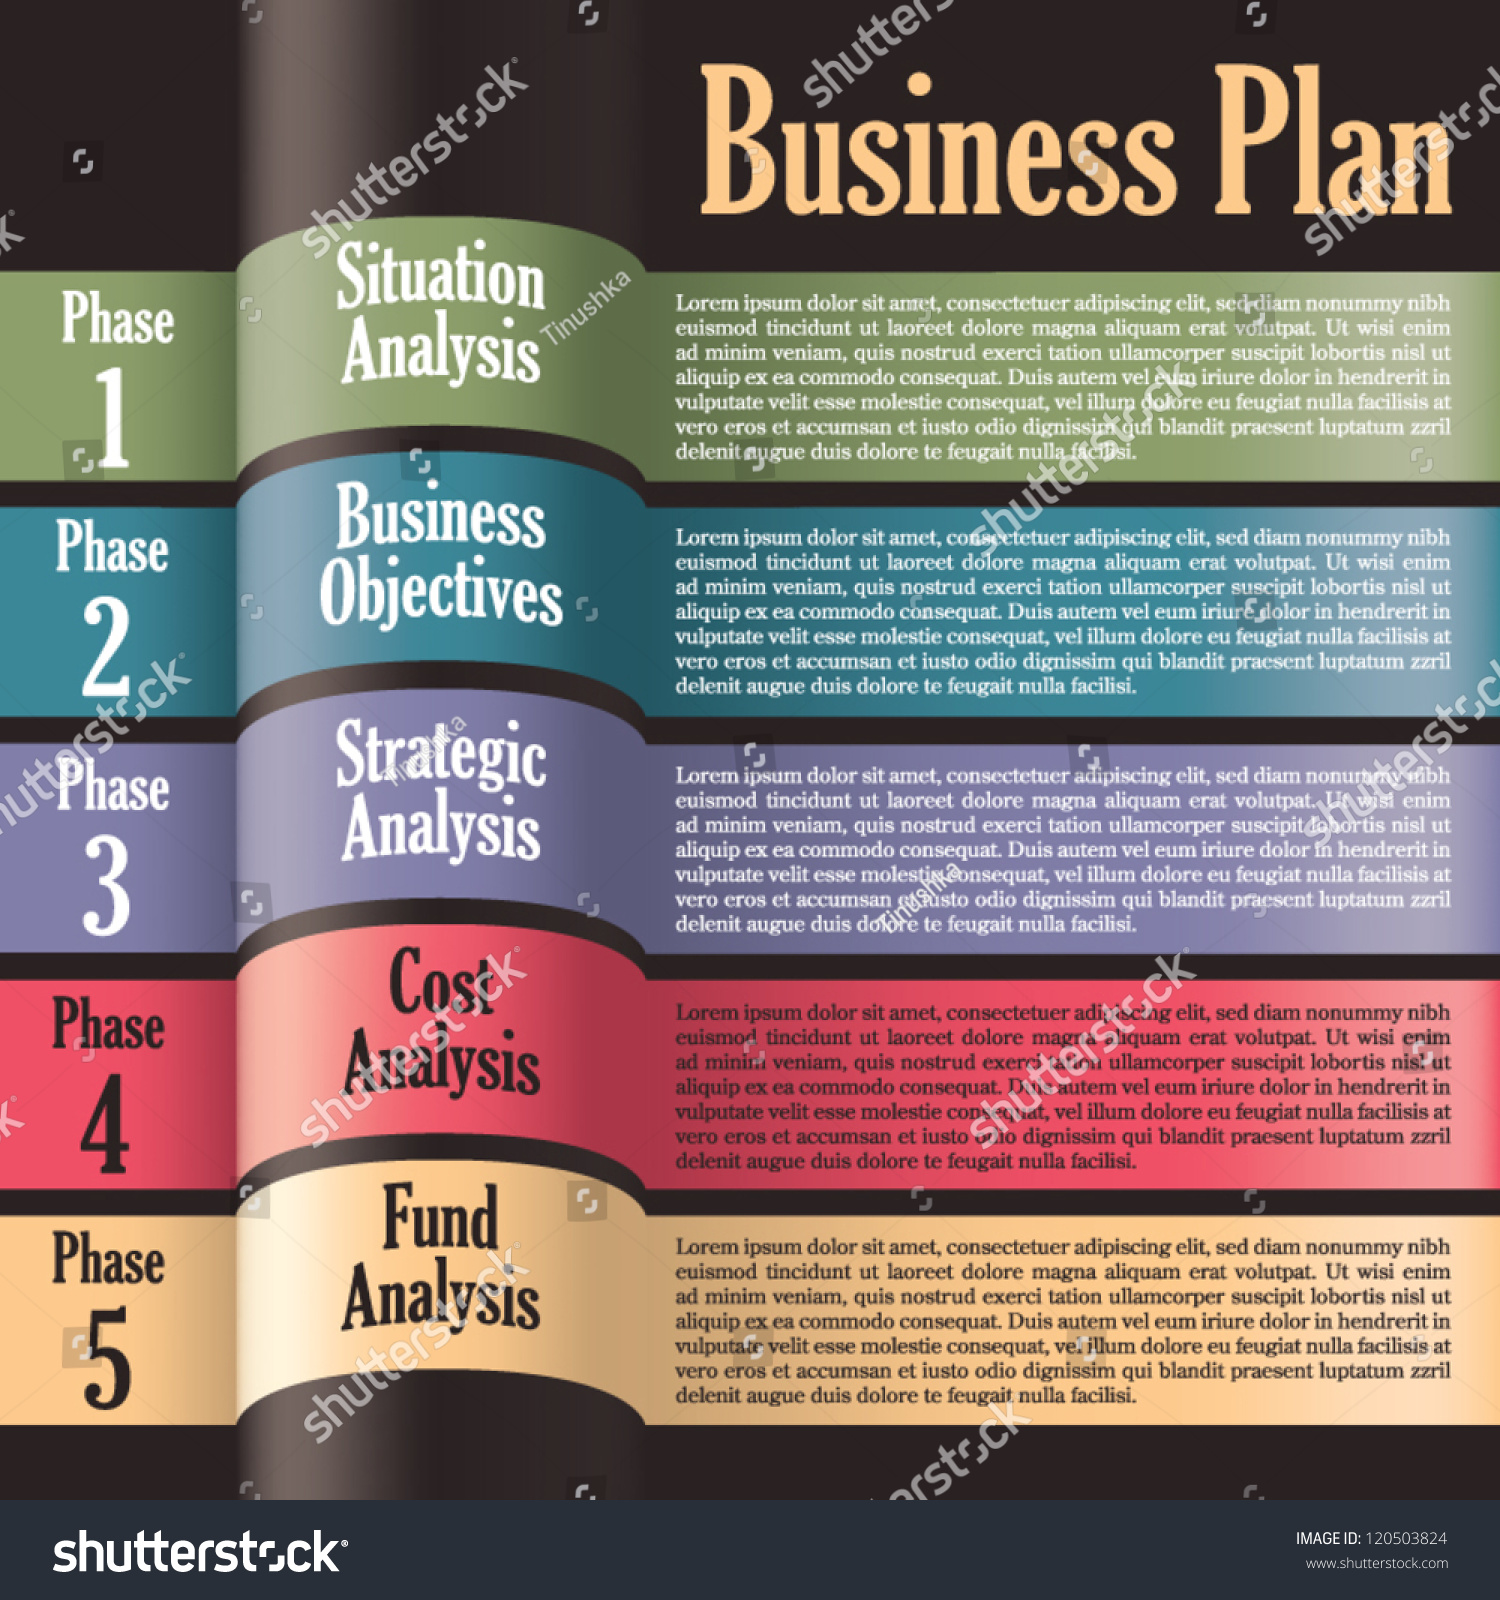 Business plan modern design template presentation stock - Business plan for web design company ...